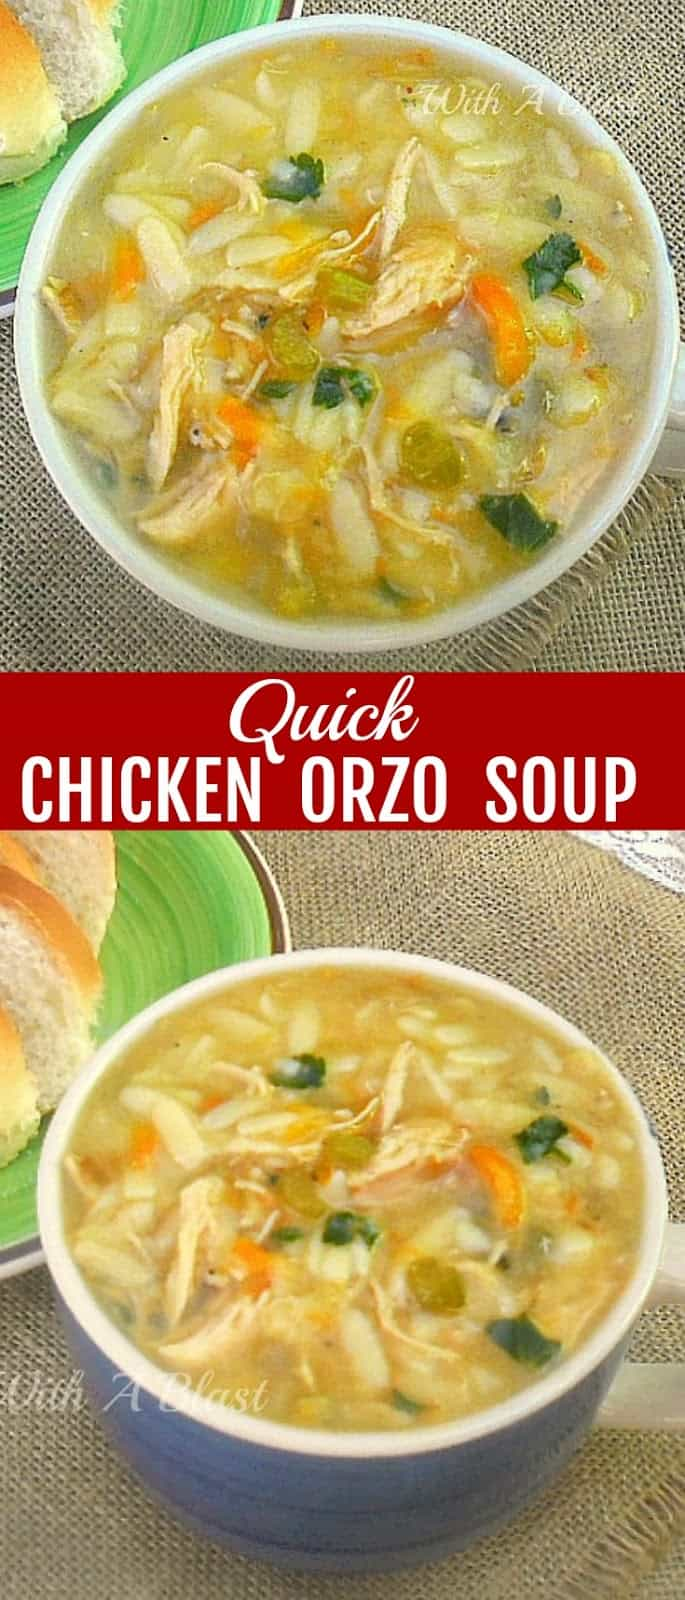 Delicious, thick, filling and warming Quick Chicken Orzo Soup ~ comfort food in a flash ! #Soup #ChickenSoup #OrzoSoup #ChickenRecipes #QuickSoupRecipes #EasySoupRecipes #PastaSoupRecipes